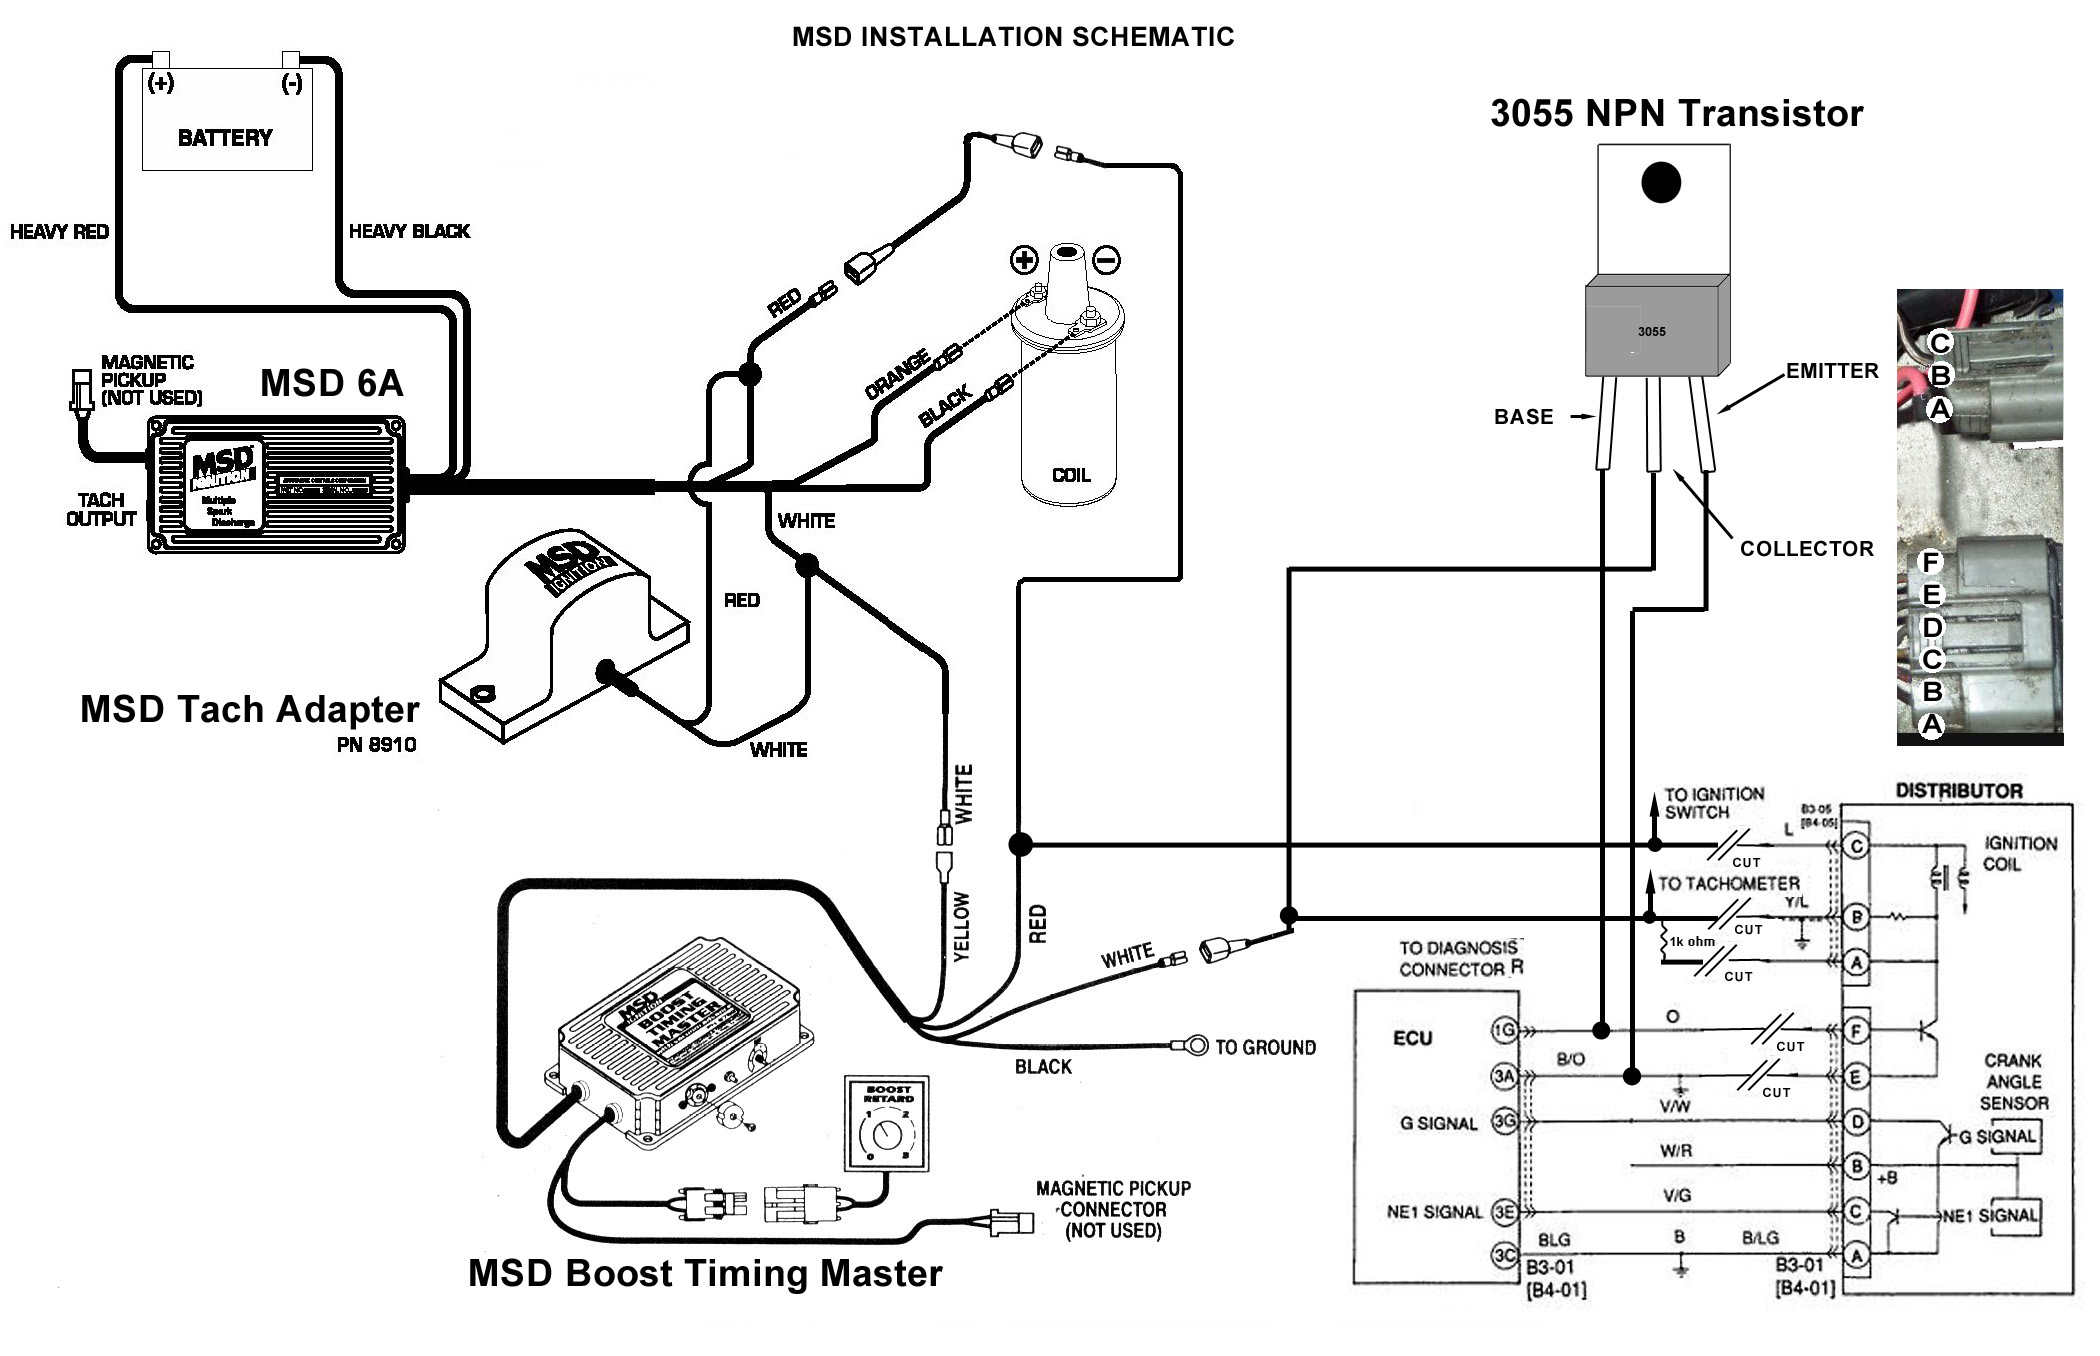 Wiring Diagram 93 Mazda Protege And Schematics Radio Msd Mx 6 Forum Rh Mx6 Com